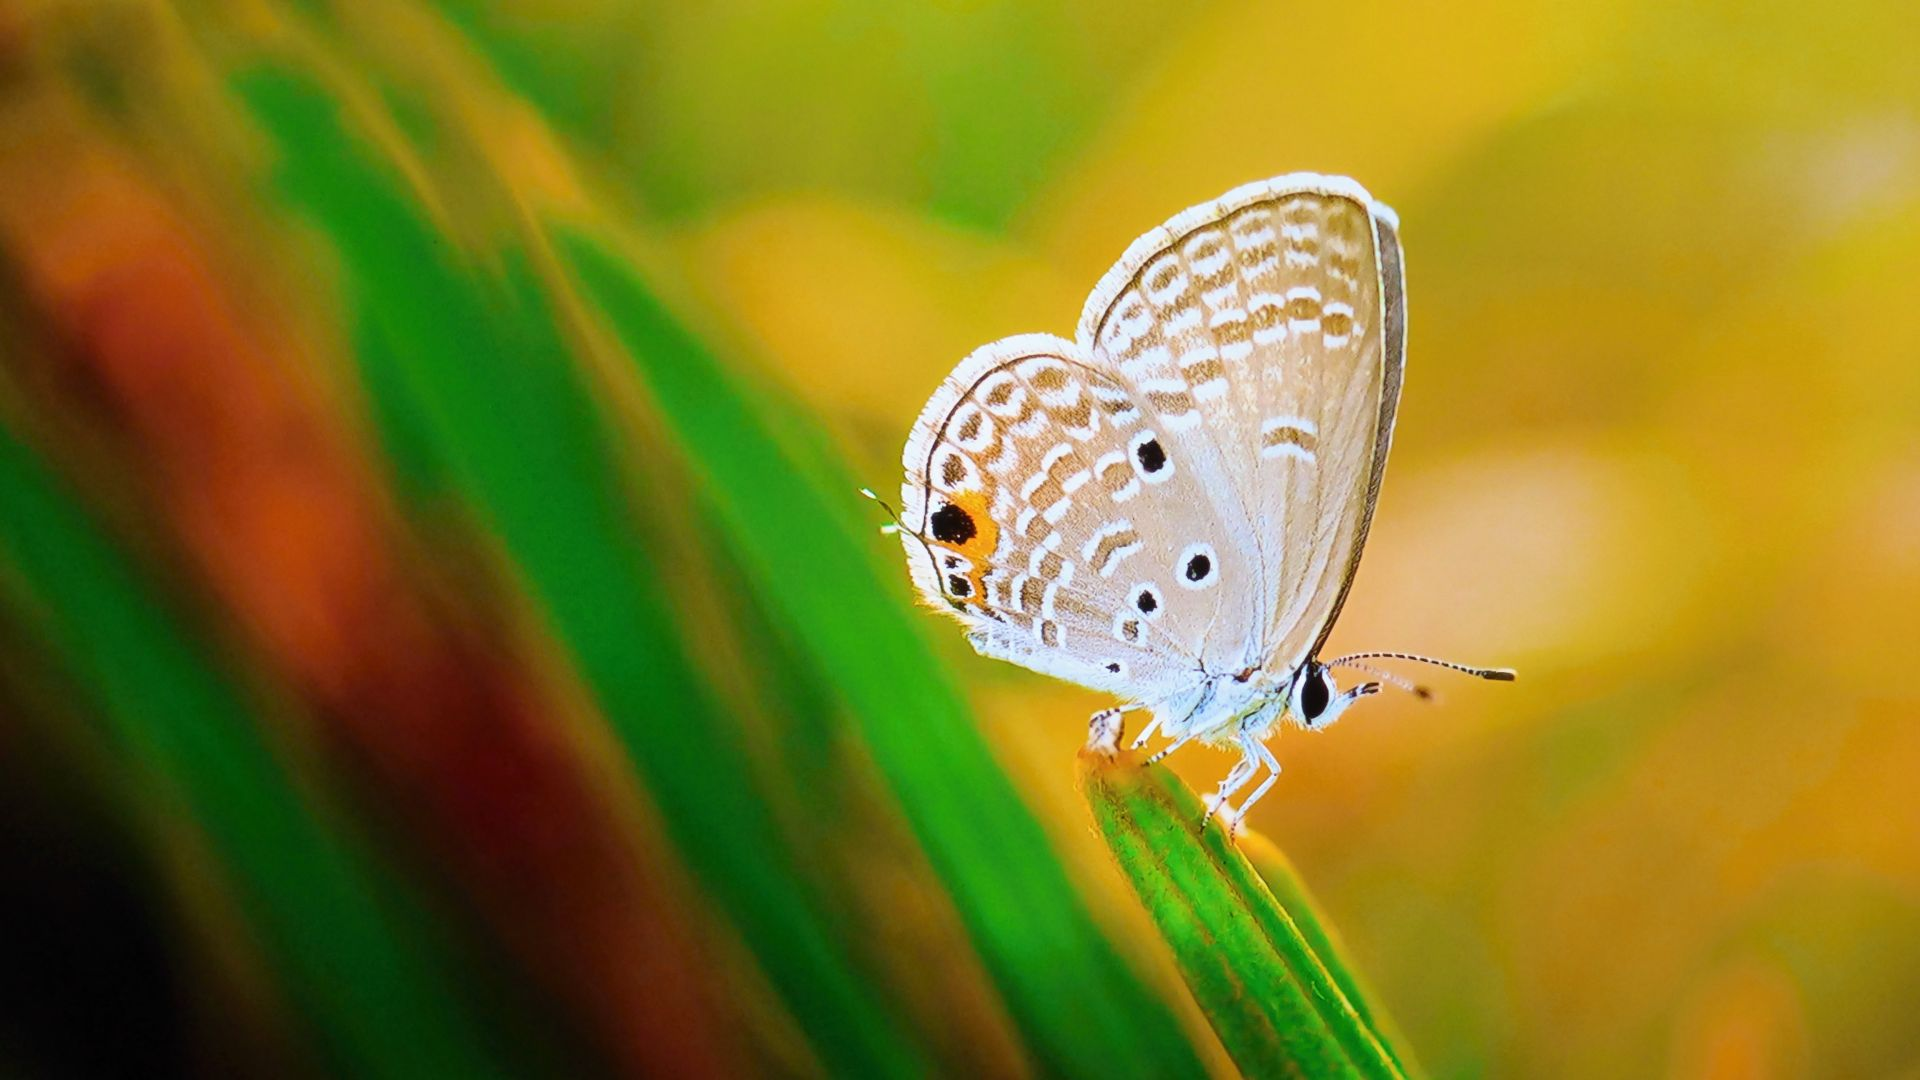 Desktop Wallpaper Close Up Insect Butterfly Wings 4k Hd Image Picture Background A2a299